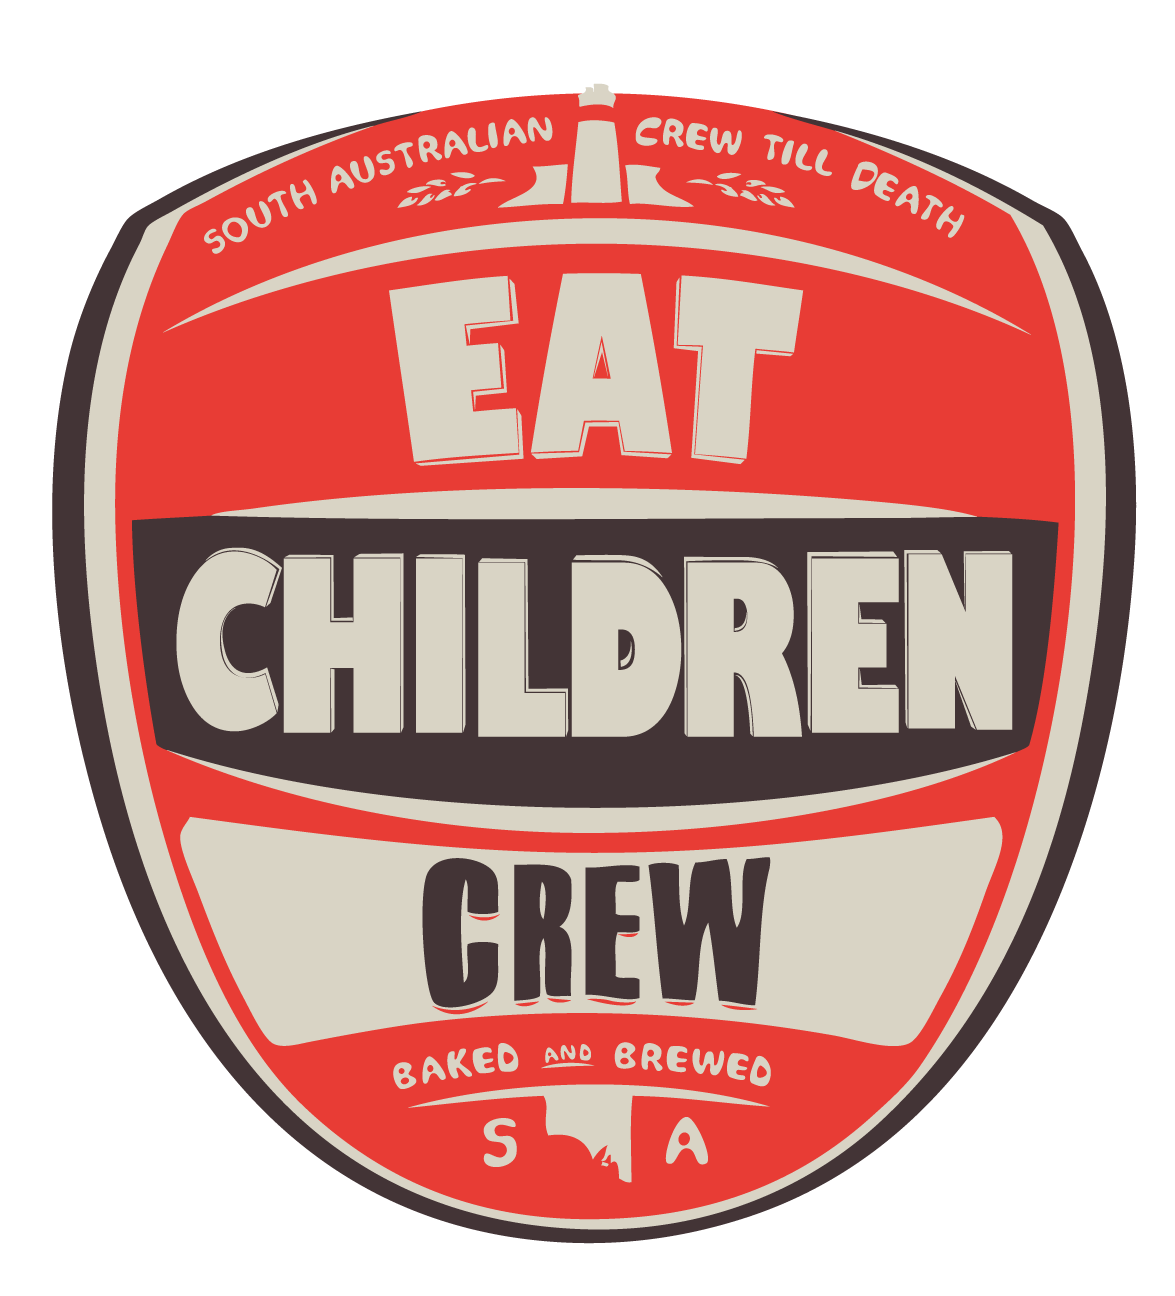 eatchildrencrew